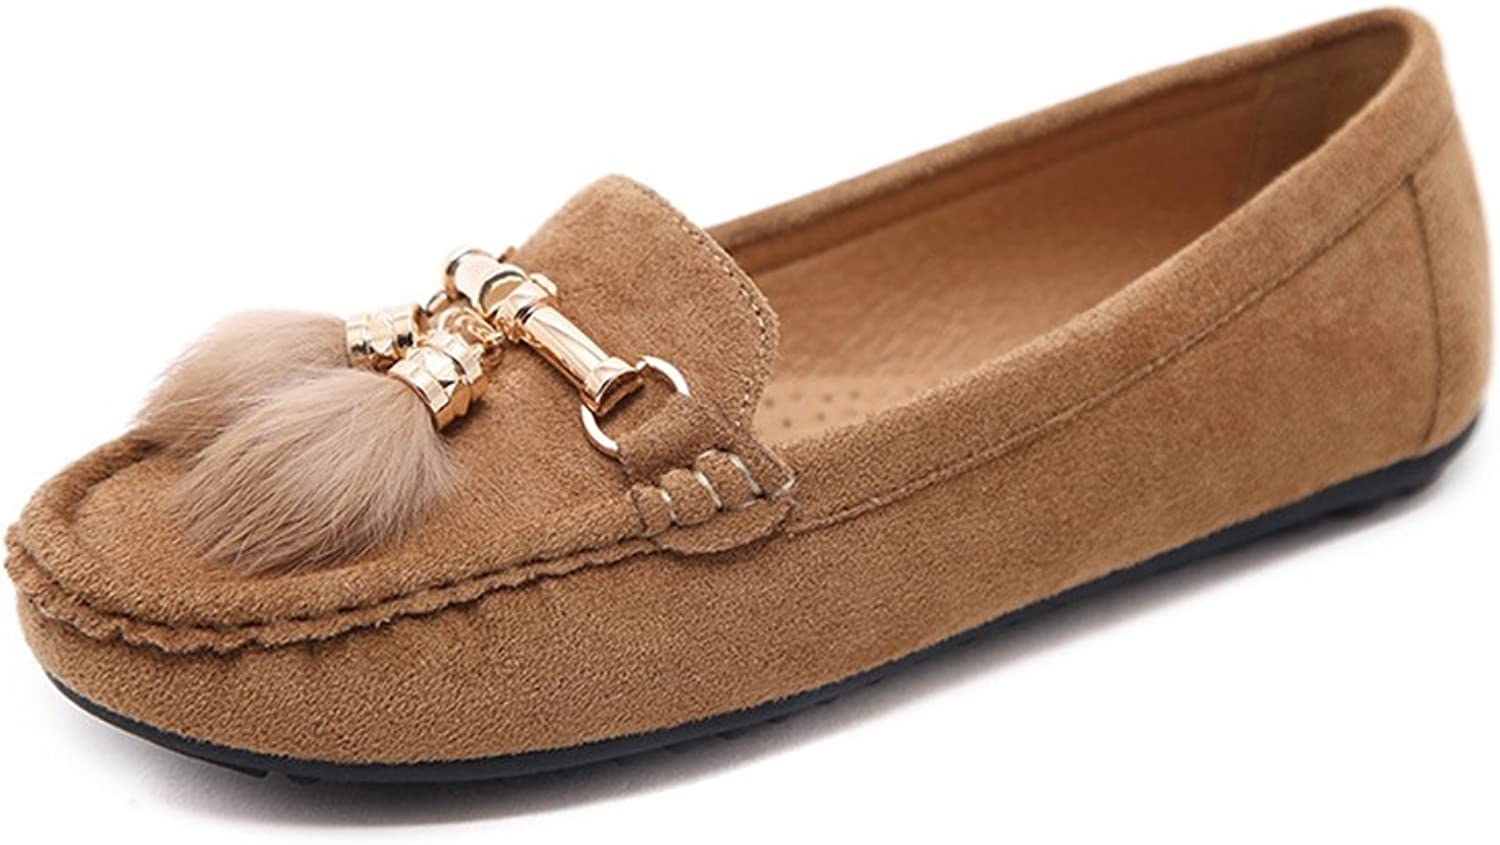 T-JULY Women's Moccasin shoes - Soft Slip On Anti-Slip Flats Clssic Tassel Loafers